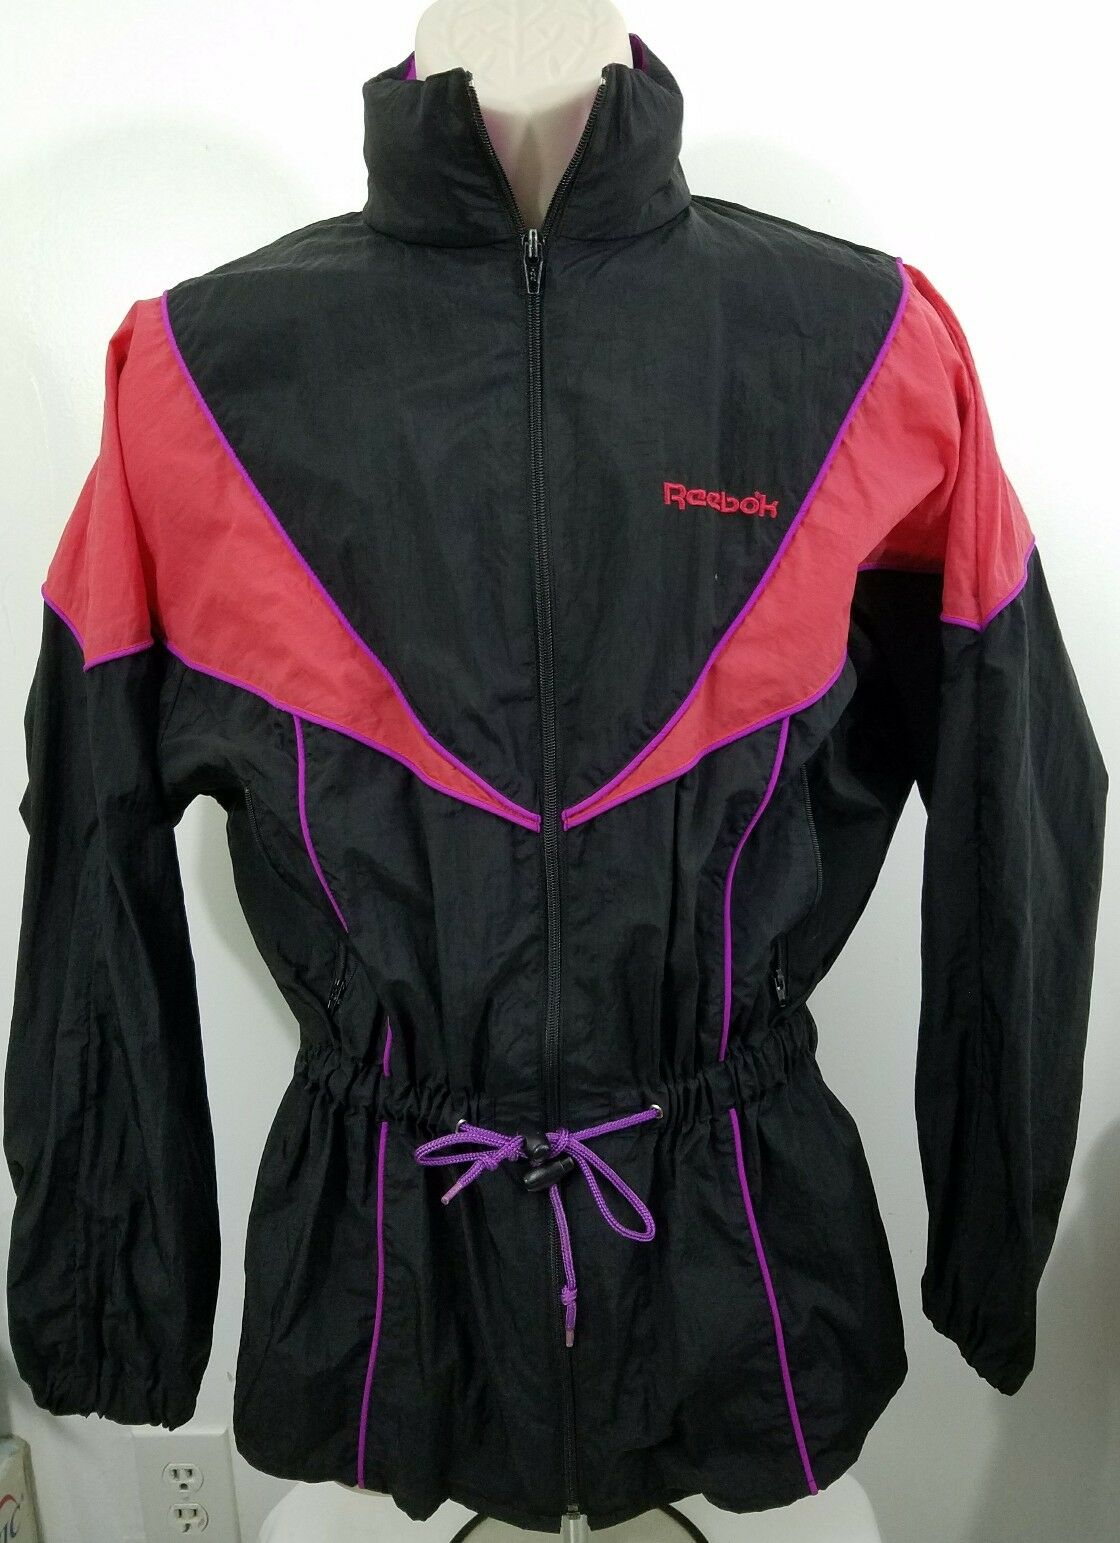 Vintage Neon Reebok windbreaker full zip size small 1378